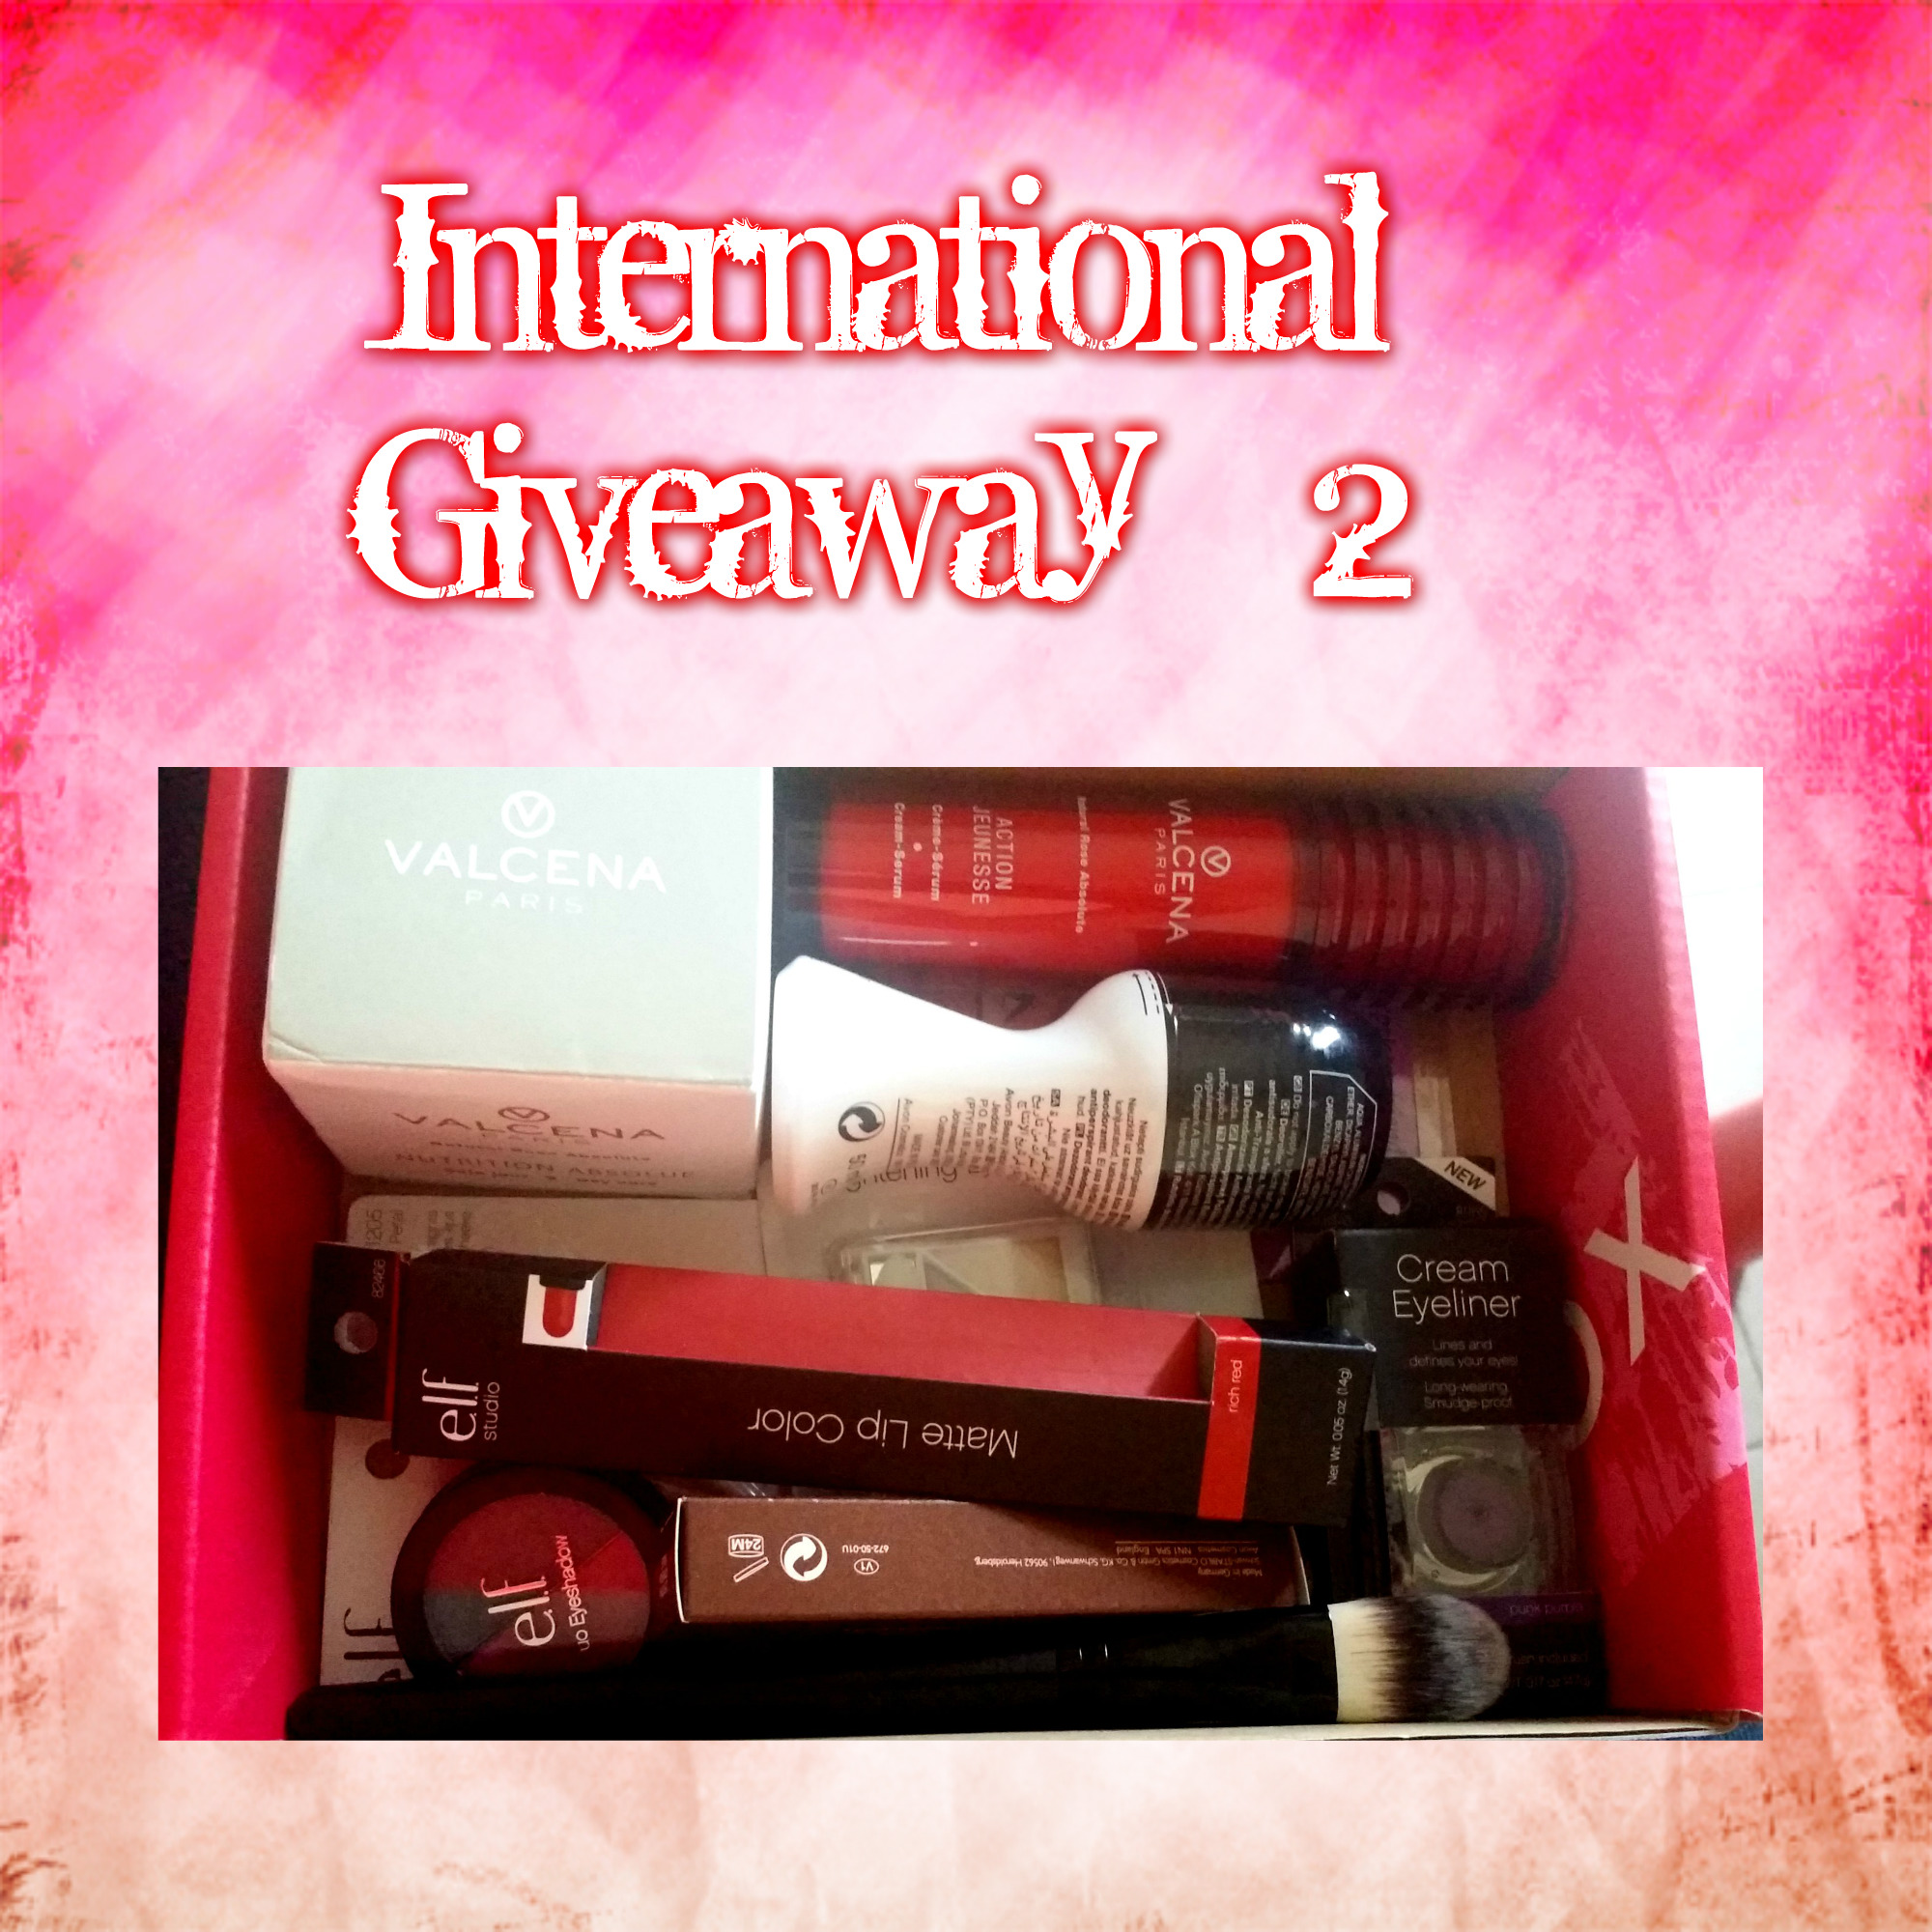 International Giveaway # 2